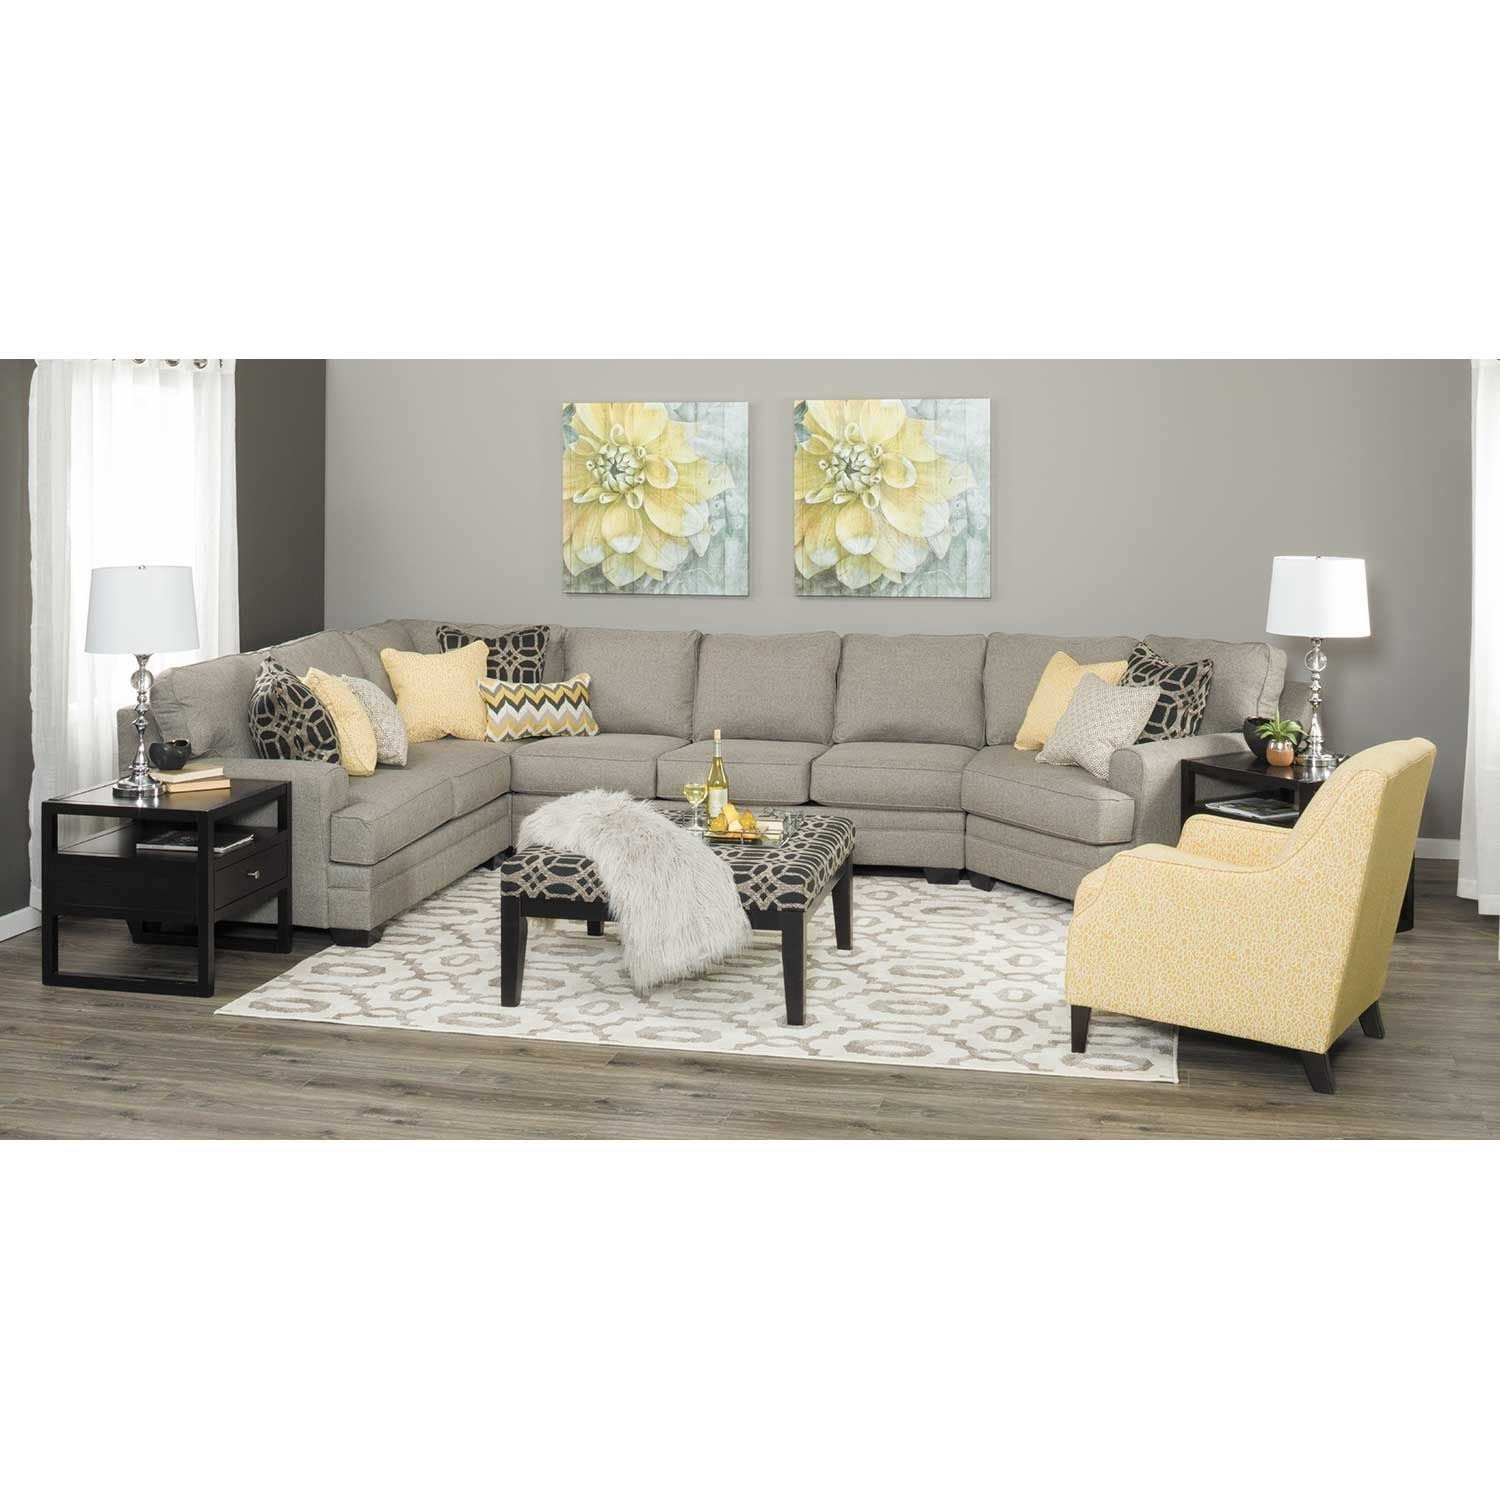 Cresson 4 Piece Pewter Sectional With Laf Chaise | 5490716/99/77/56 intended for Alder 4 Piece Sectionals (Image 12 of 30)